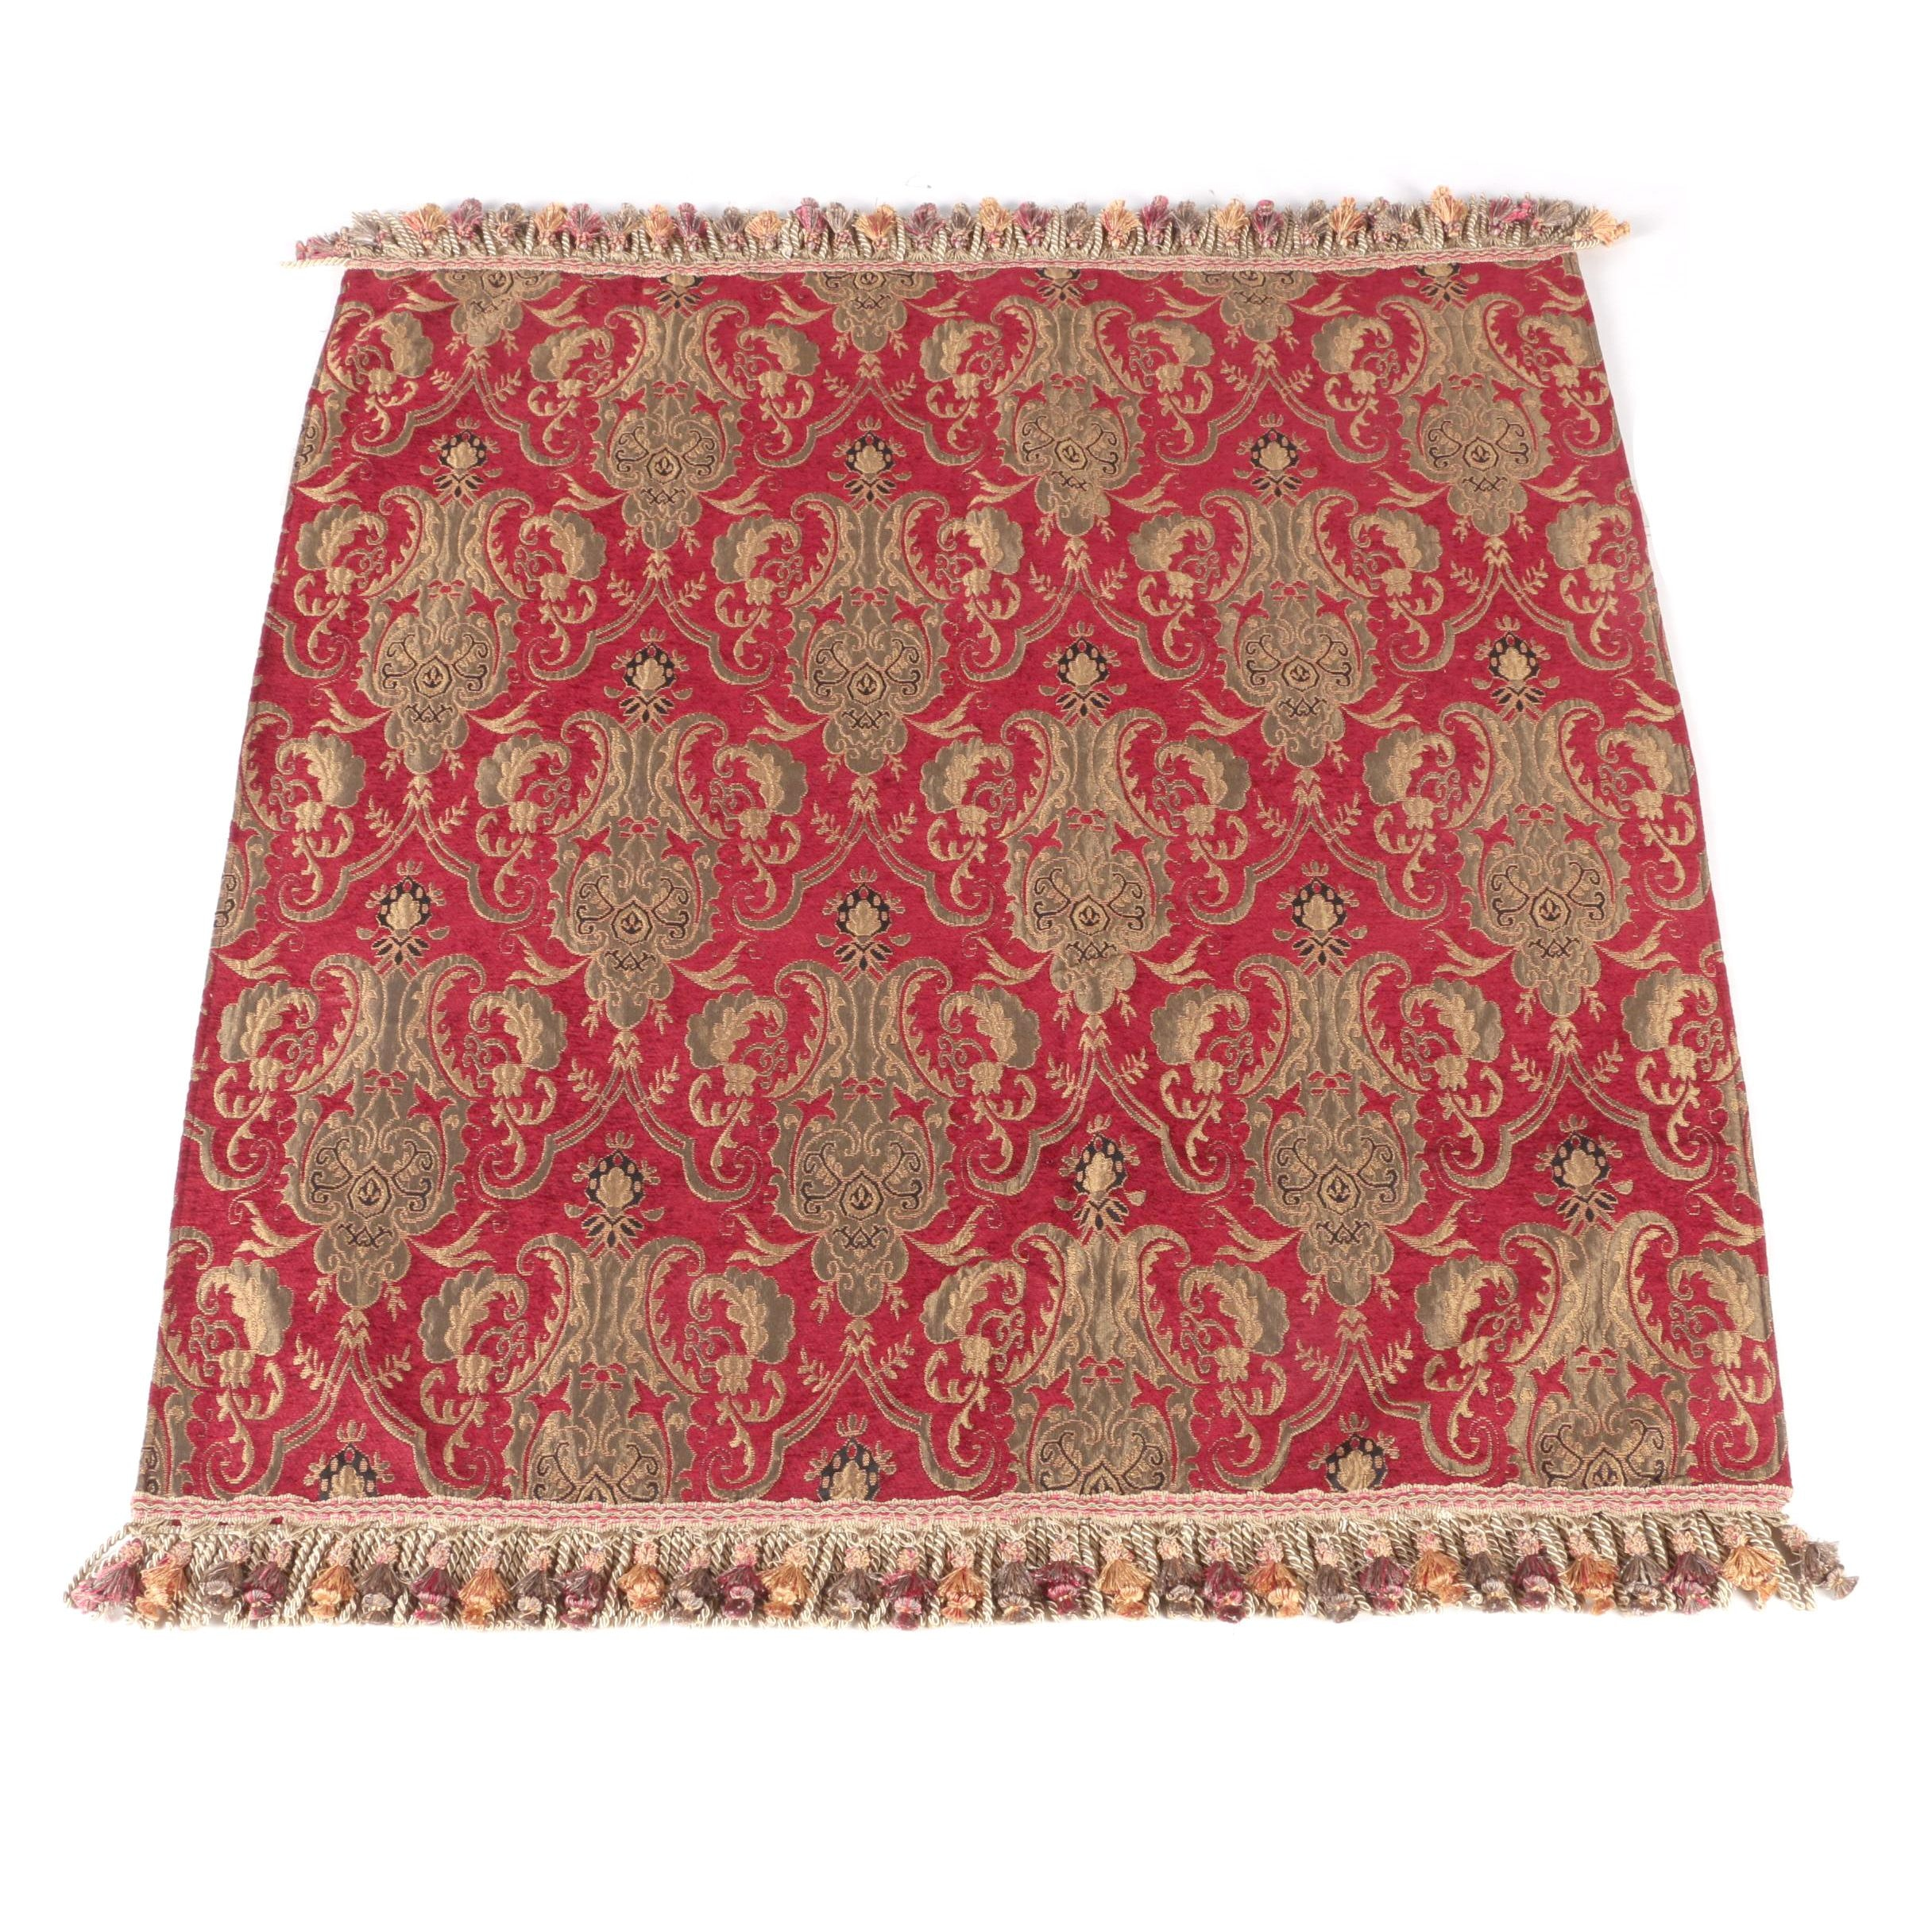 Woven Red and Gold Tone Tapestry